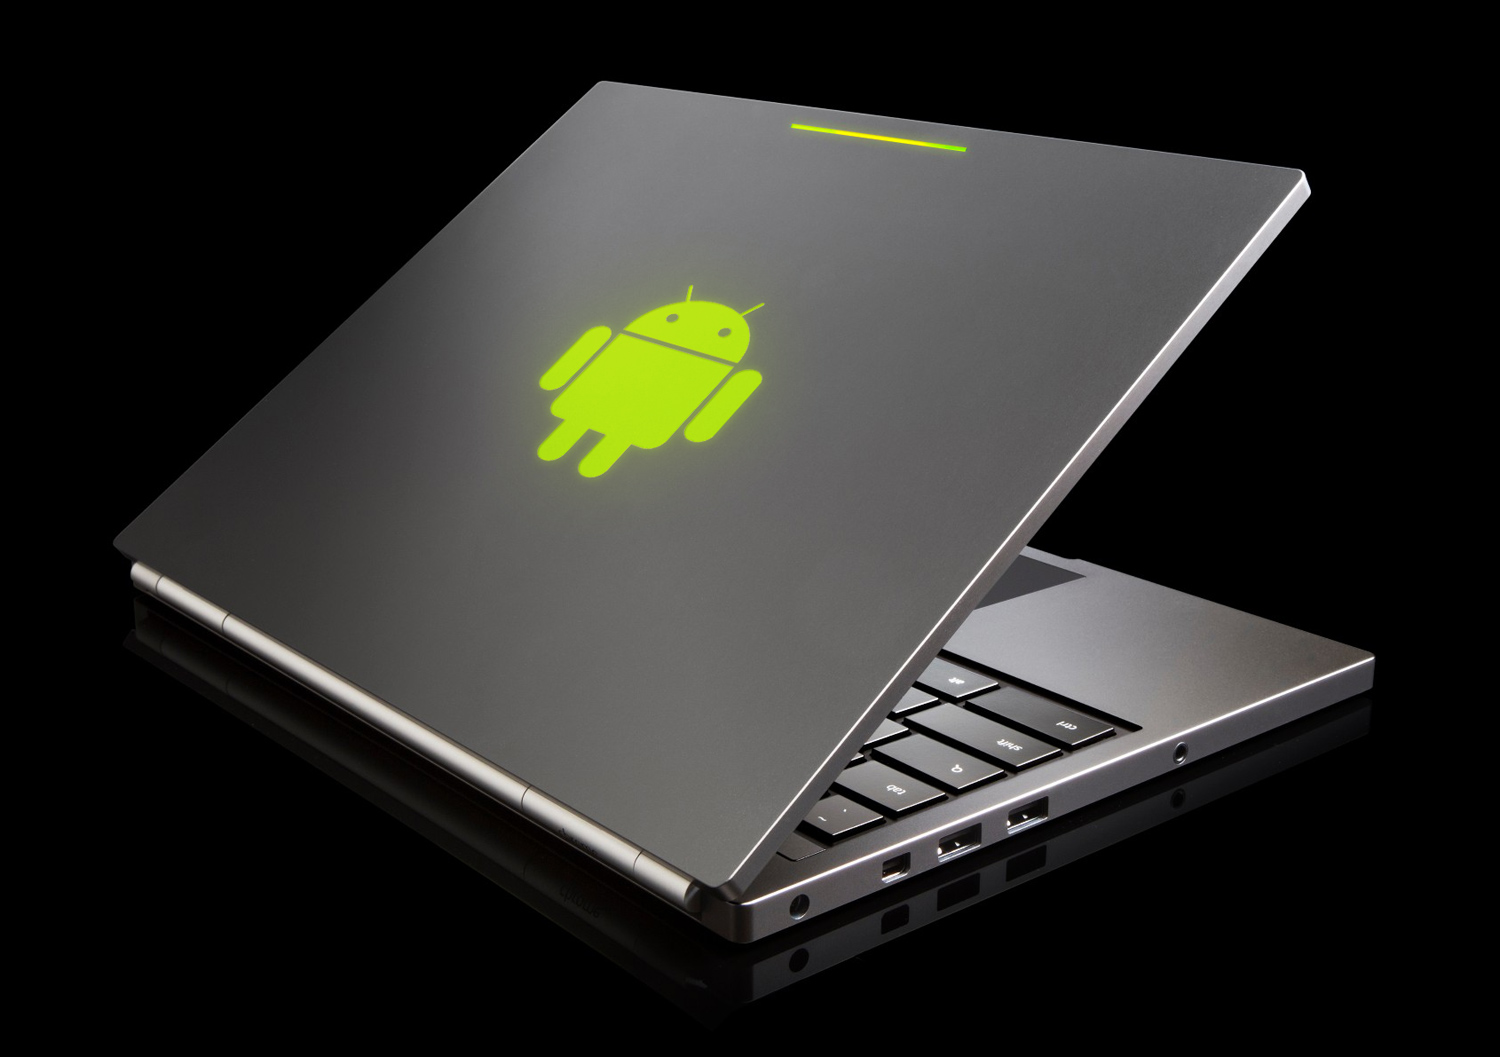 Ashbourne PC Repairs: Samsung to Deliver Android Laptop—a Good Idea?